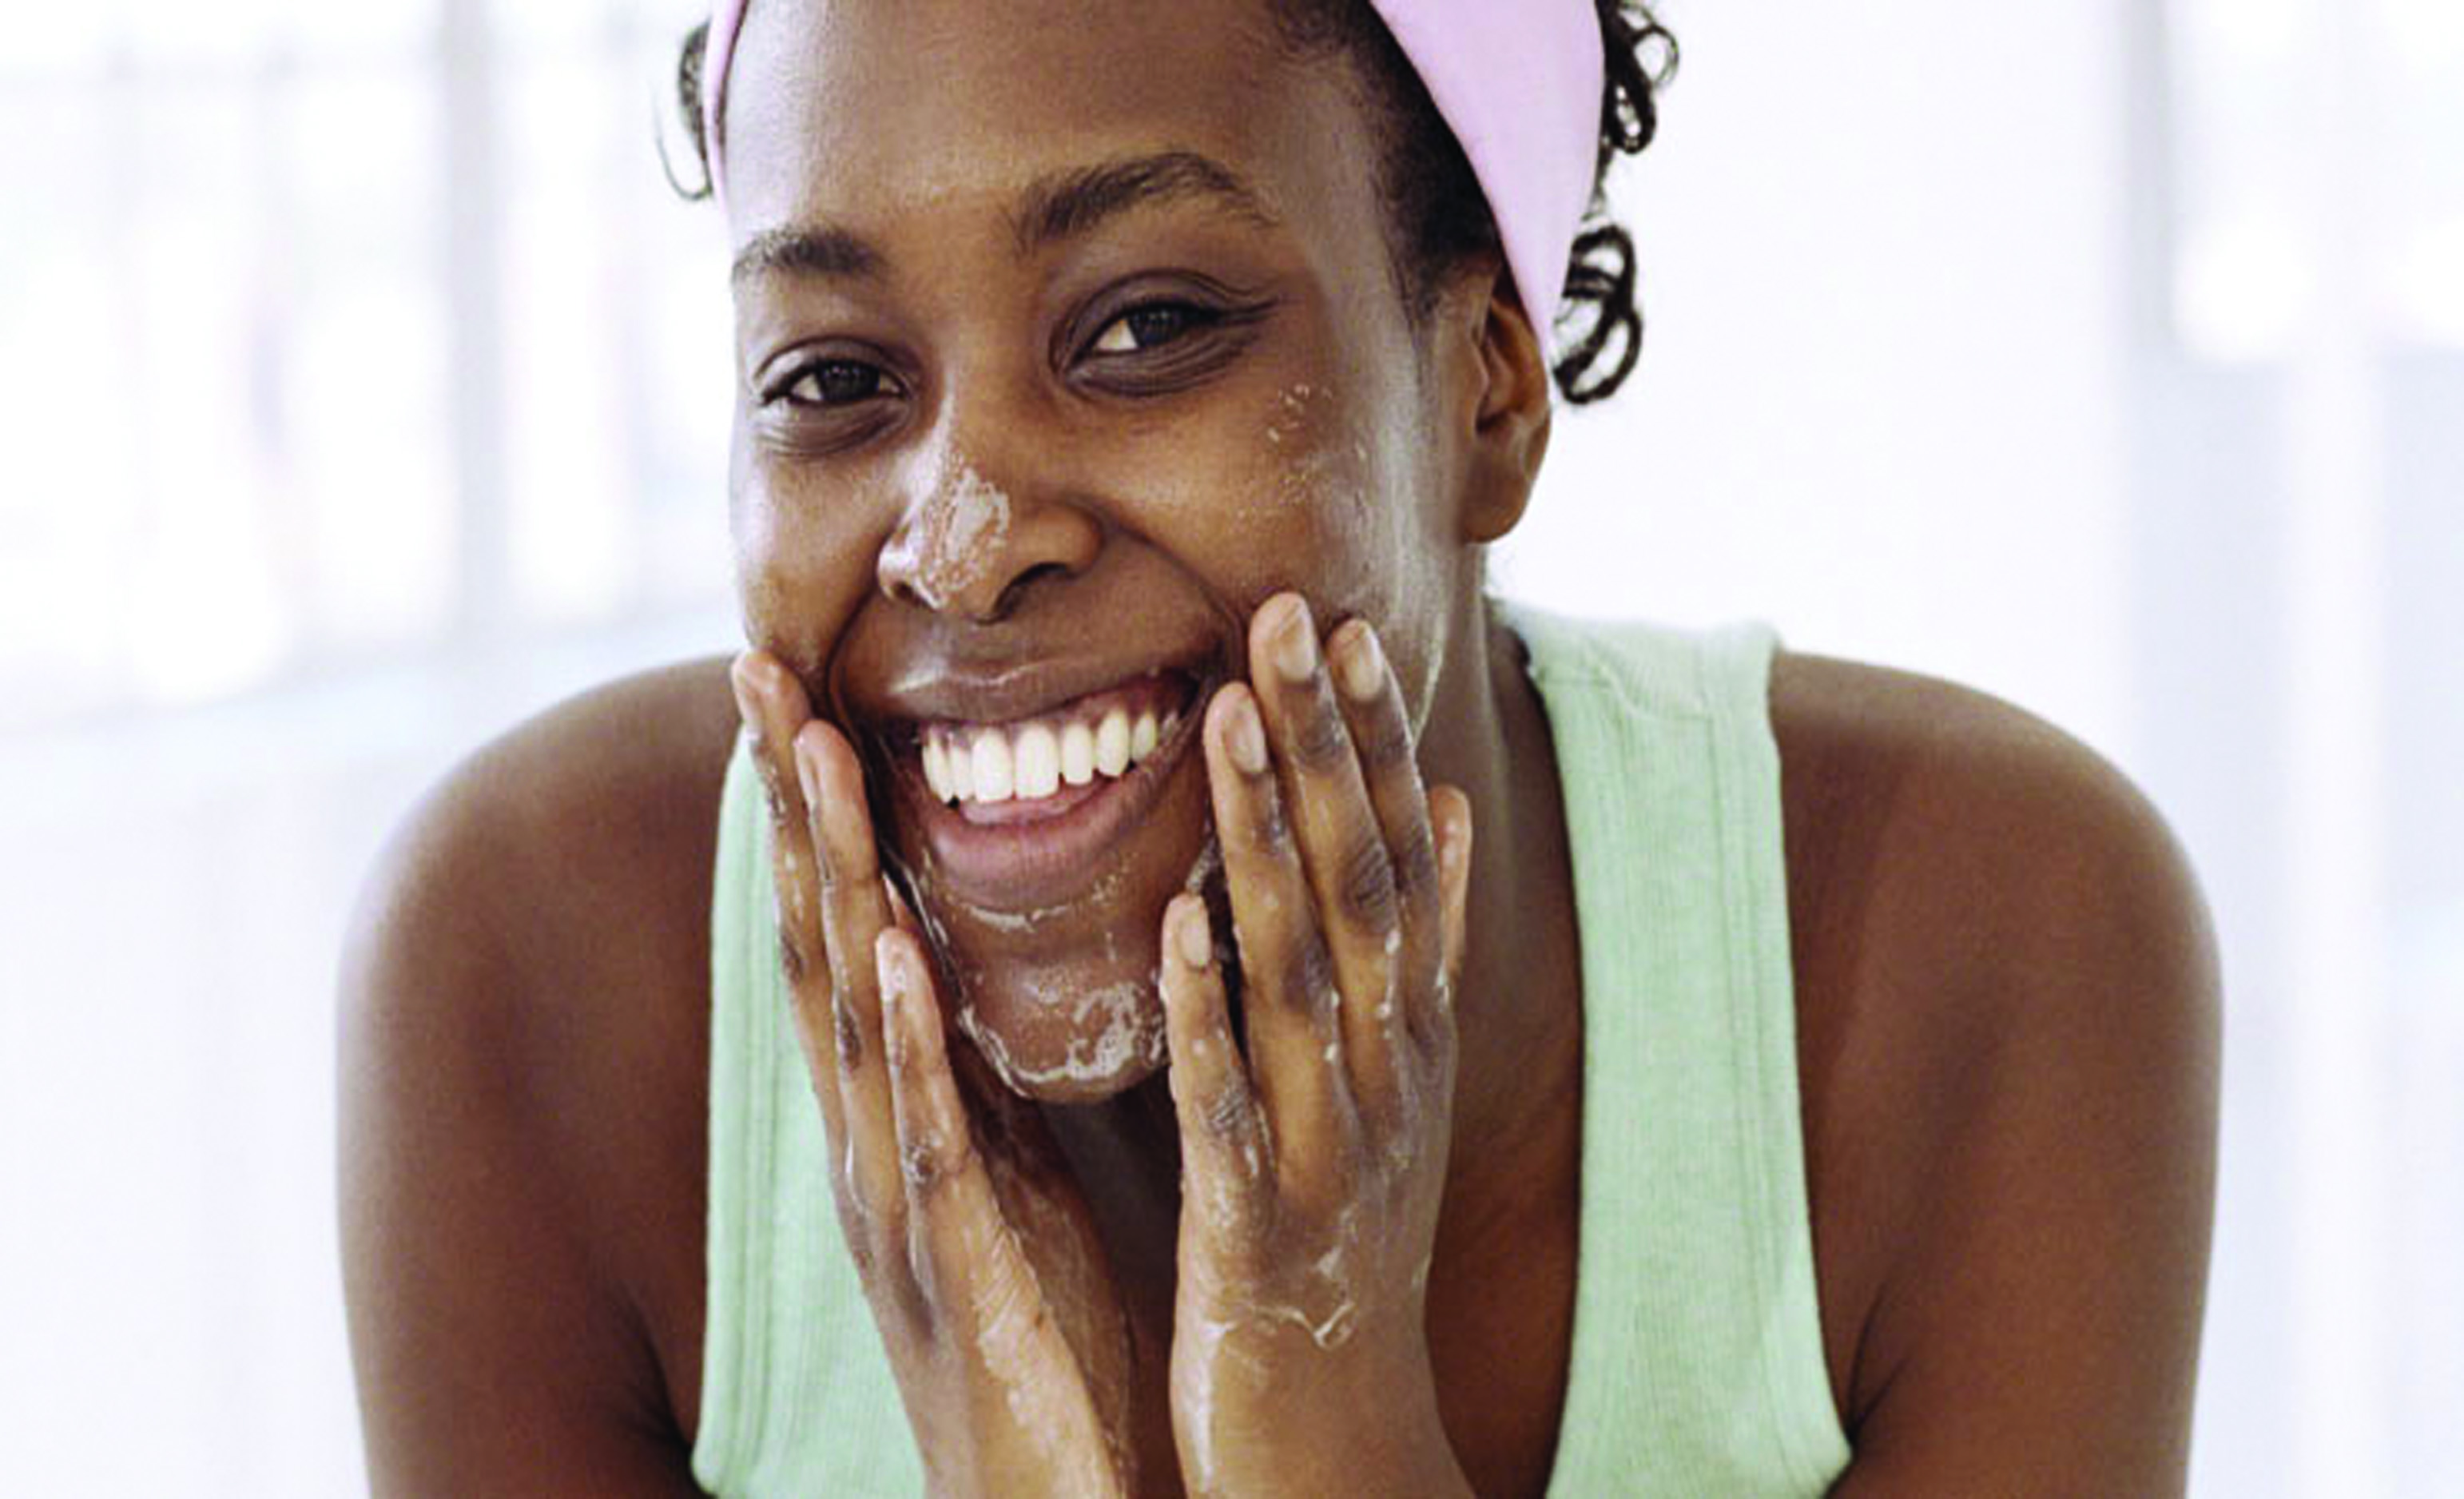 The ugly side of a woman's world of beauty